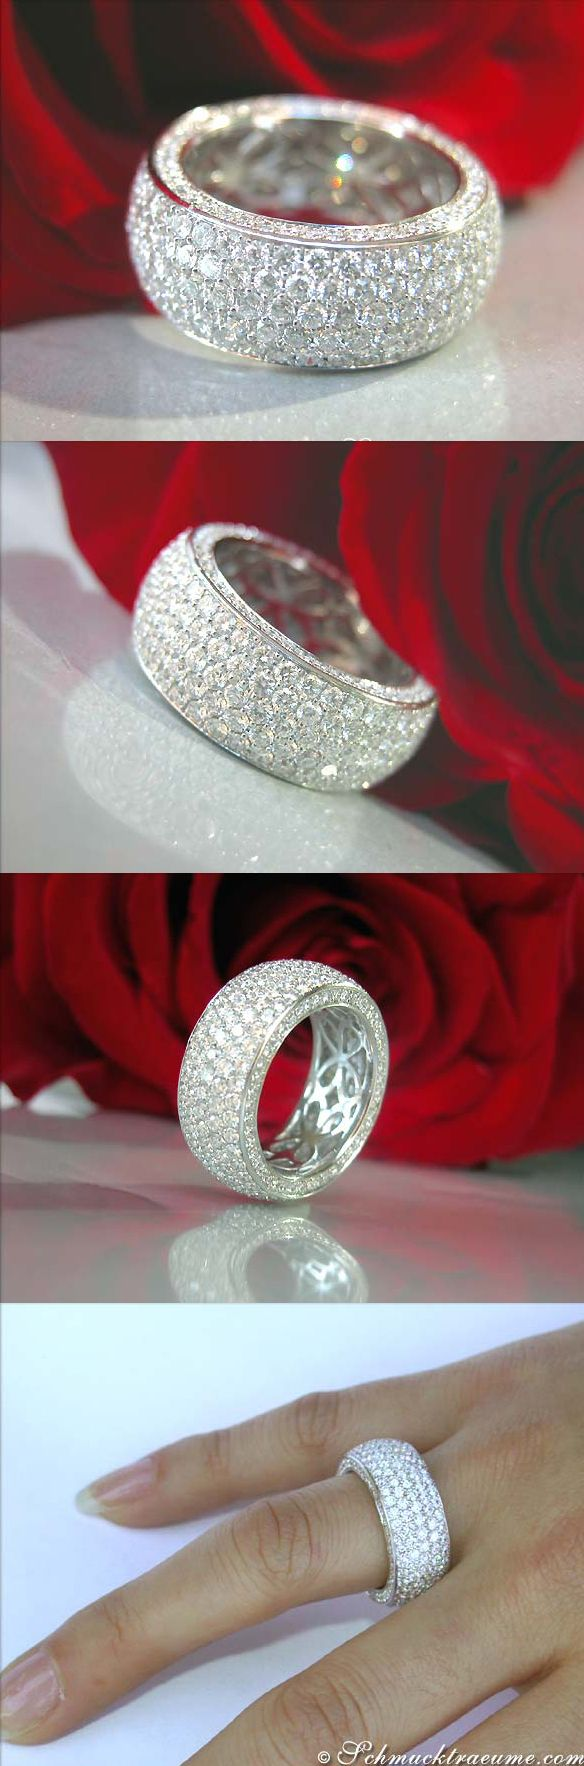 High-end Diamond Eternity Ring, 4,68 cts. g-vsi/vvsi WG18K - Find out: schmucktraeume.com - Like: https://www.facebook.com/pages/Noble-Juwelen/150871984924926 - Contact: info@schmucktraeume.com